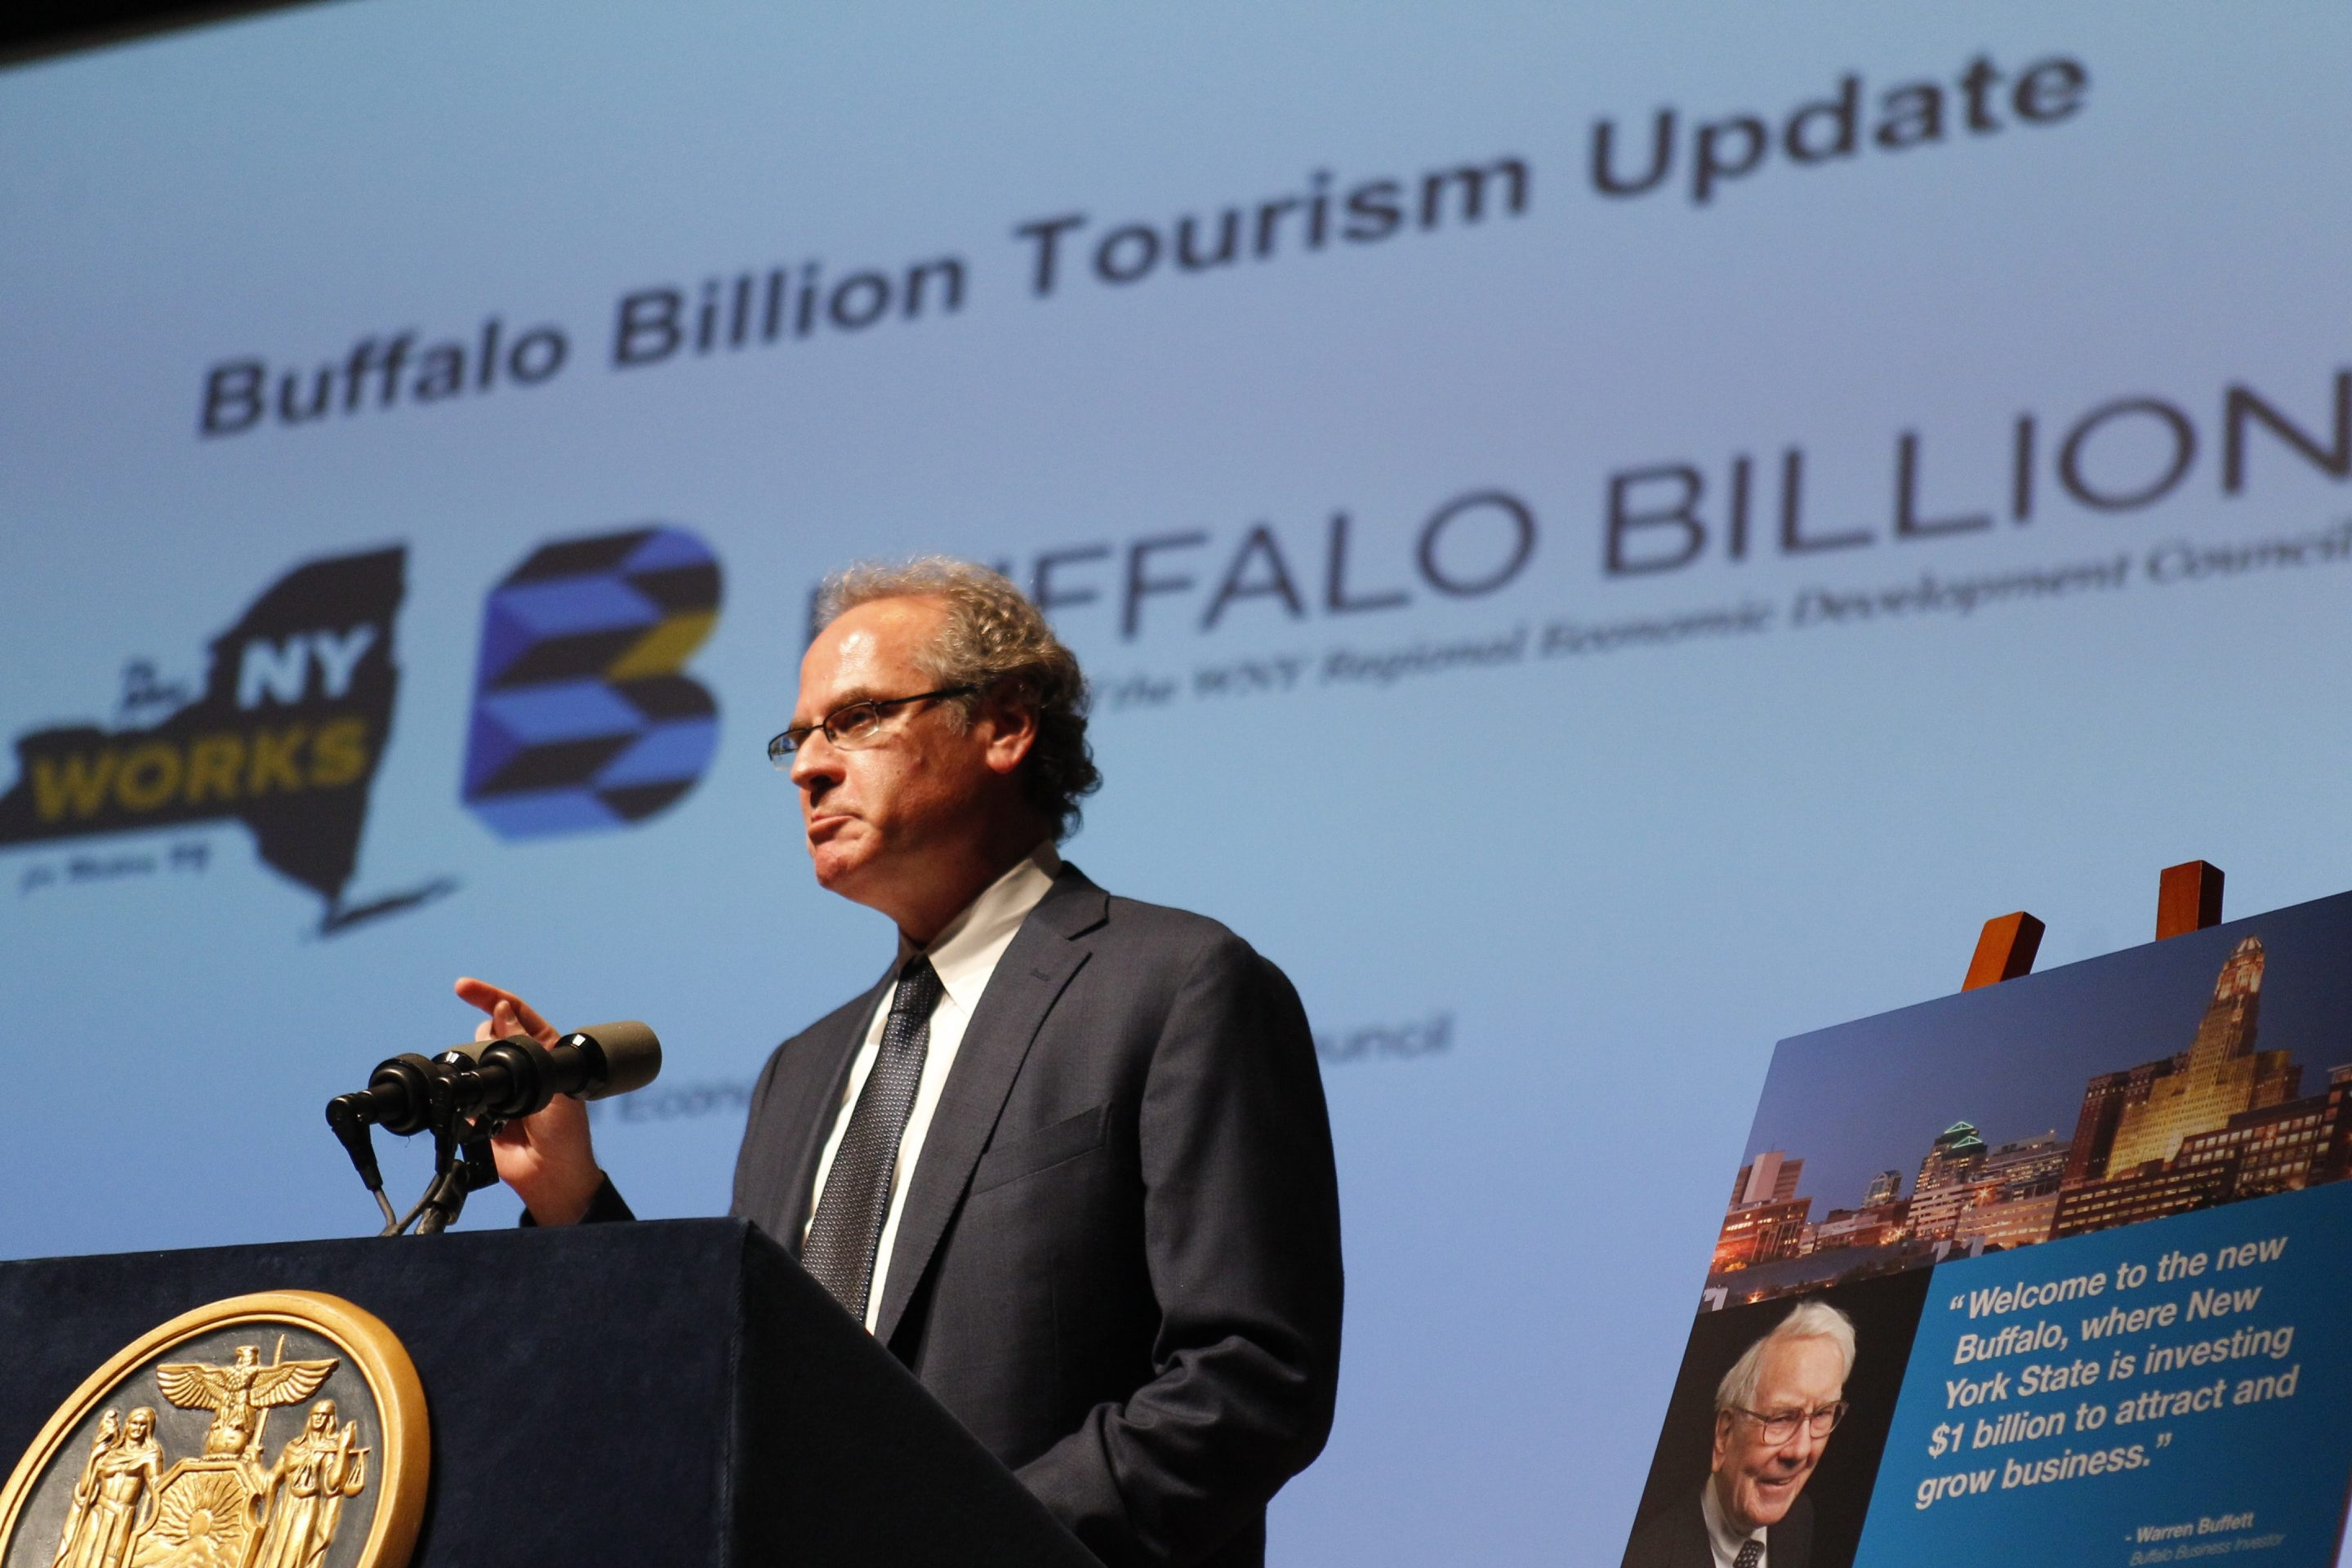 """Howard Zemsky, co-chairman of the Western New York Regional Economic Development Council, said that with the Buffalo Billion commitment in the state budget, """"we'd have the capital funding and the working capital to implement the full range of our initiatives."""" (Buffalo News file photo)"""